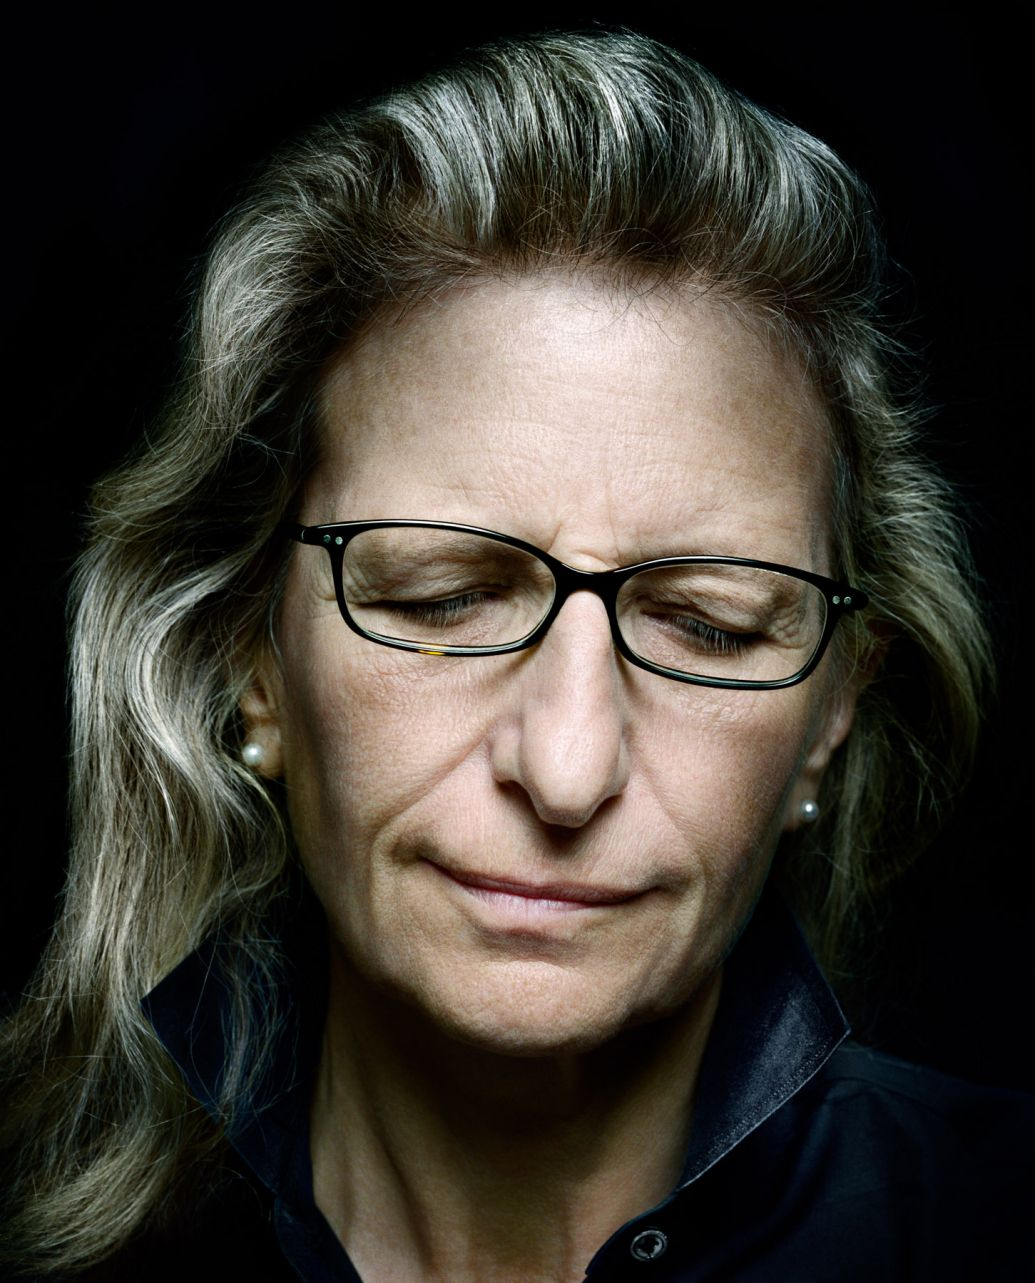 annie leibovitz portrait photography